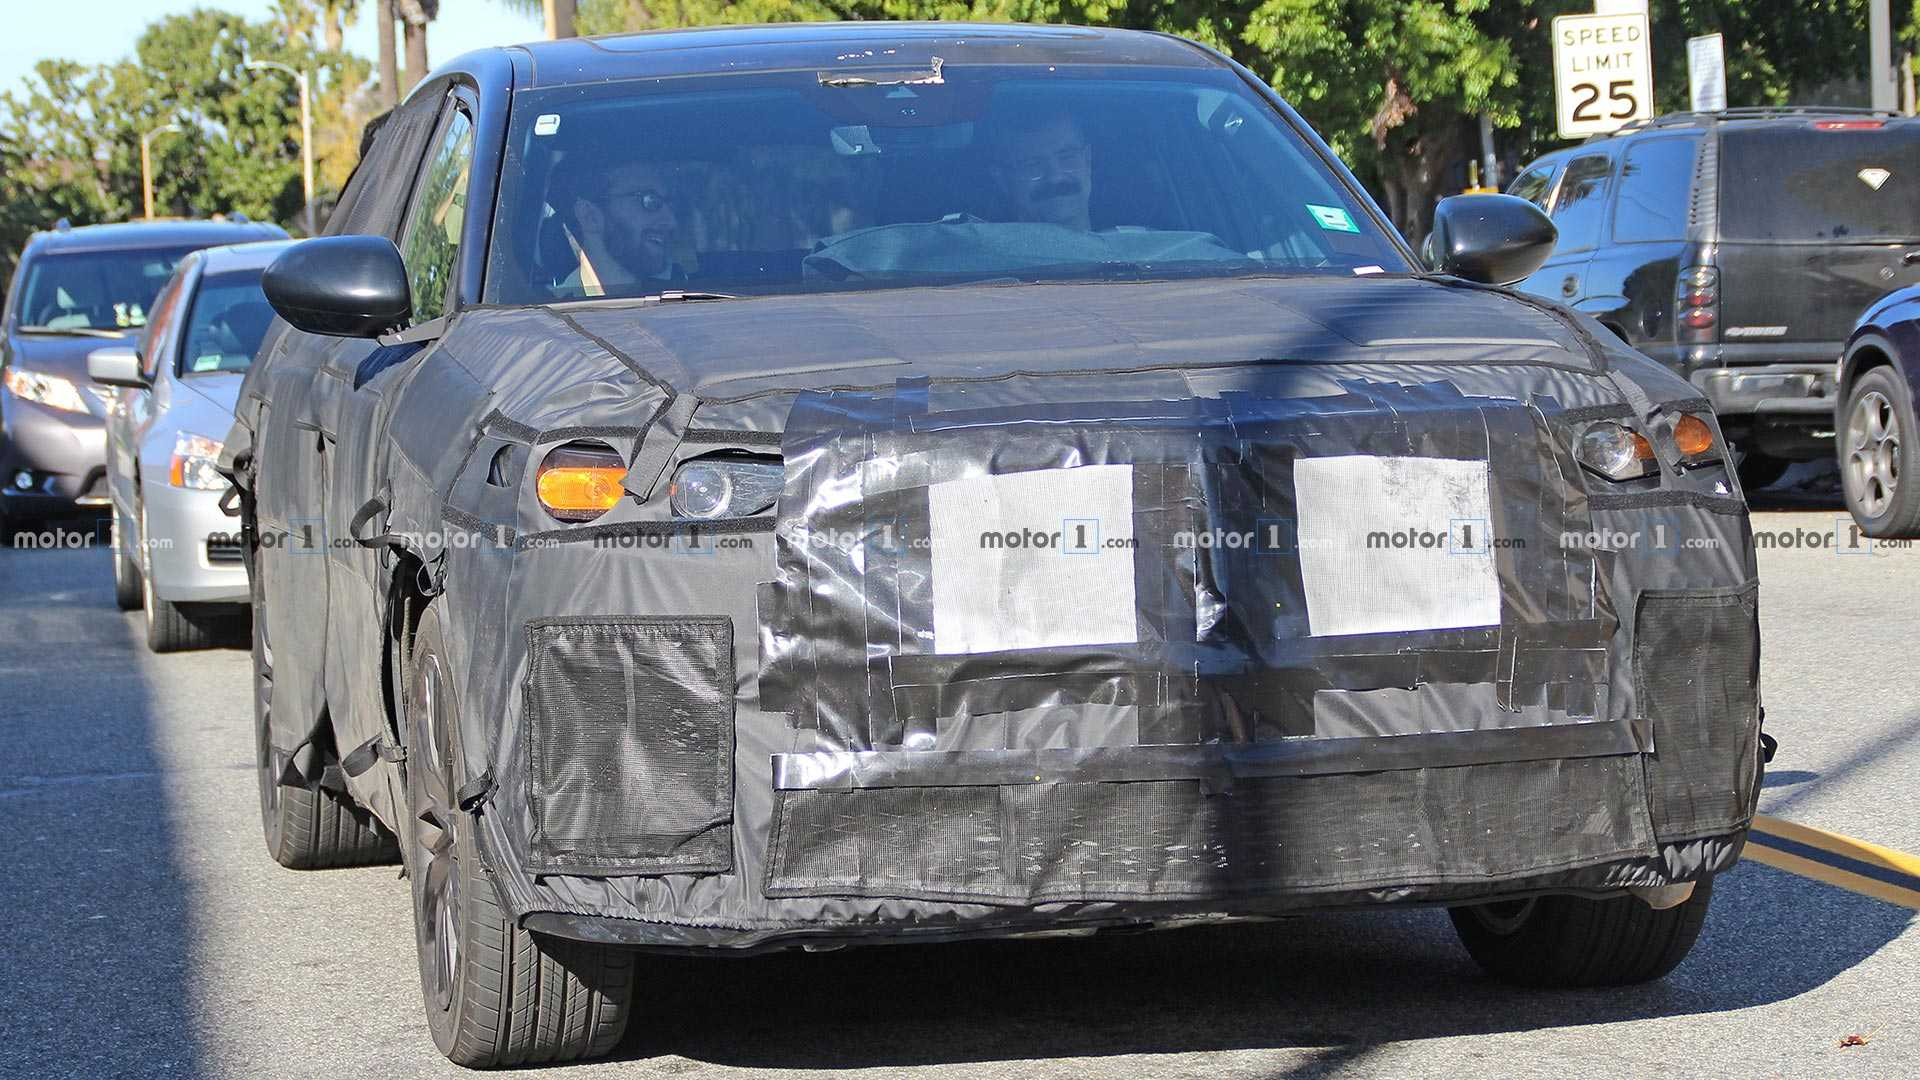 2020 Acura MDX Type S Spy Shots And Release Date Info >> 2020 Acura Mdx Type S Spied Testing Under Lots Of Concealment